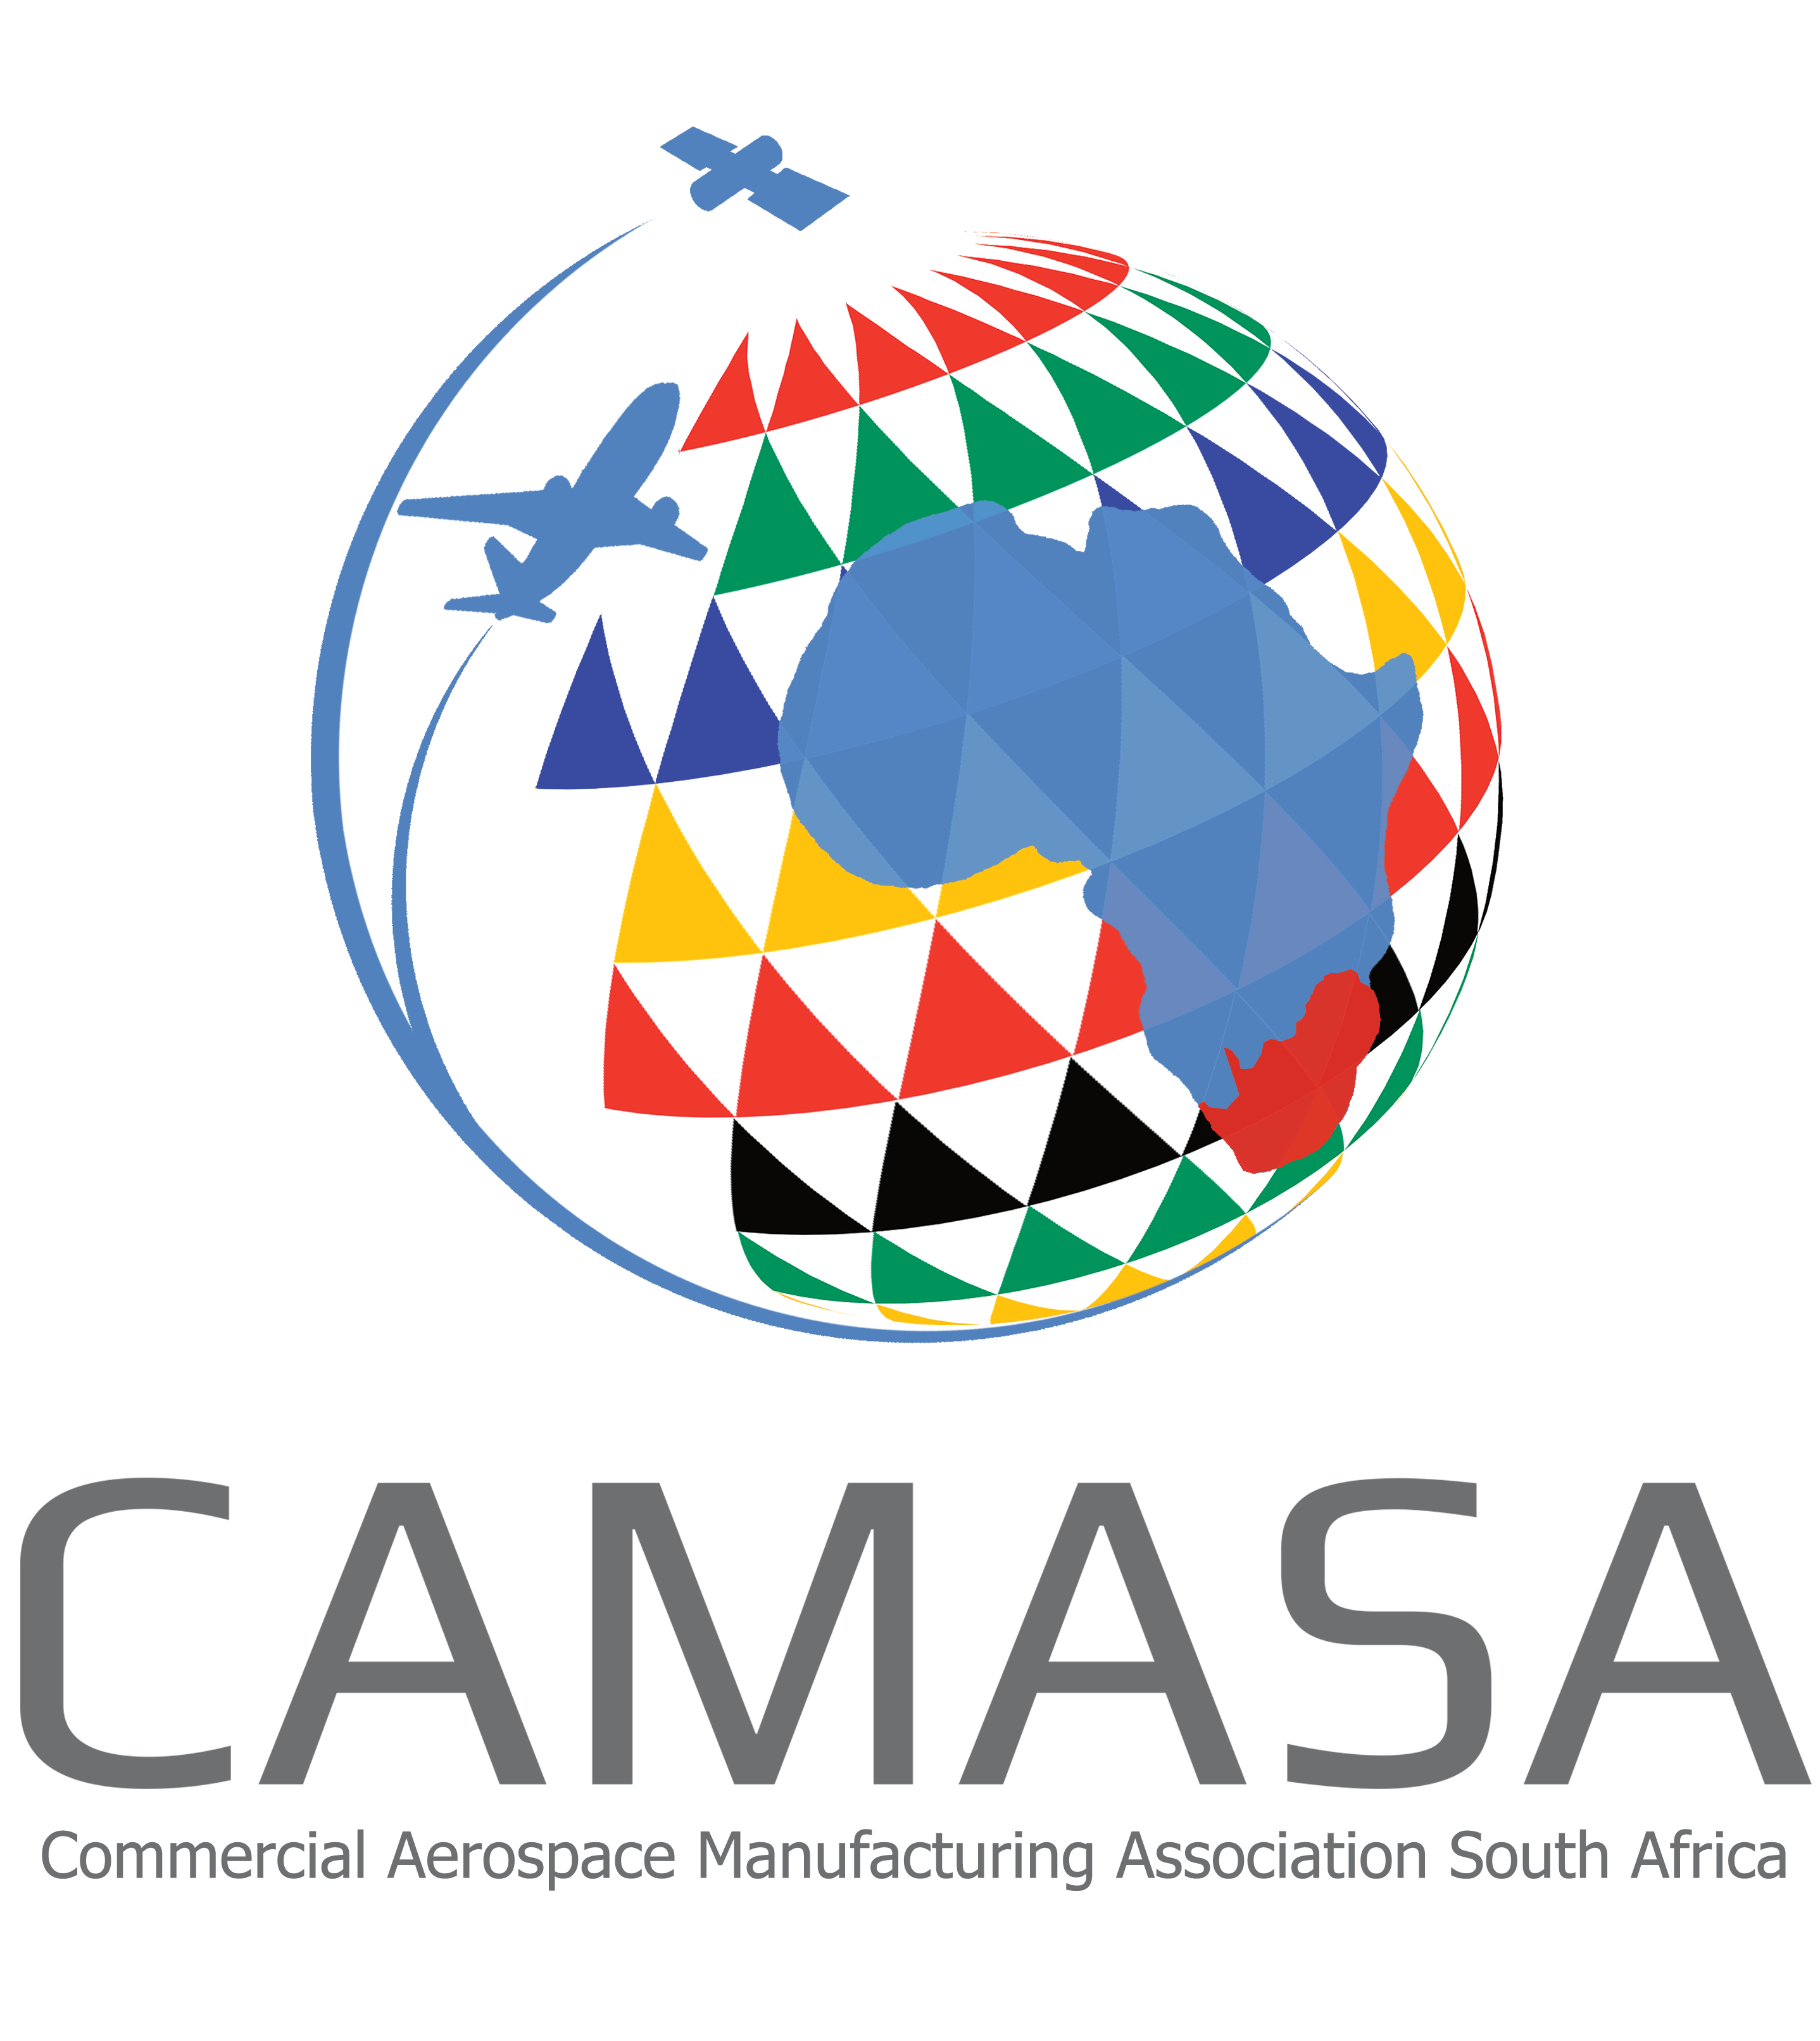 Camasa_Logo_April_2019